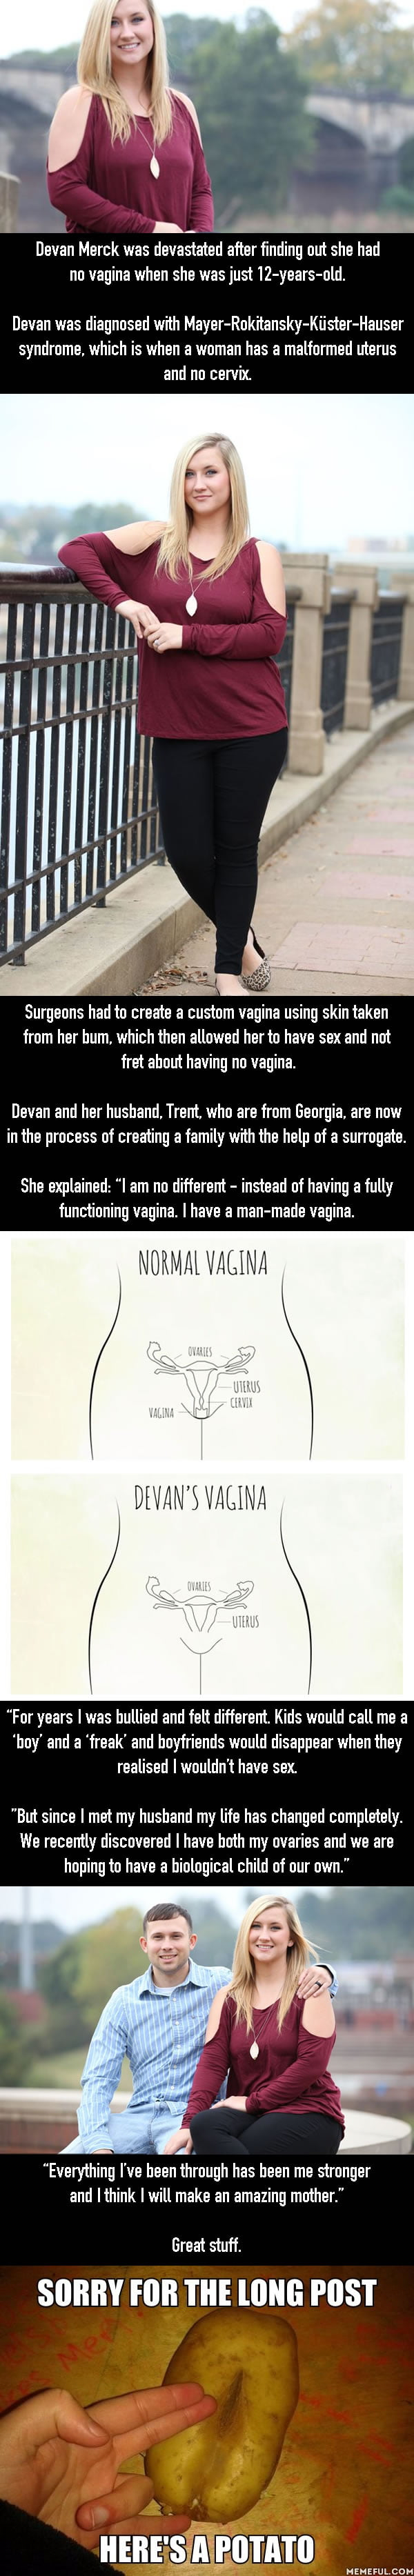 Woman Born Without A Vagina Hoping To Start A Family